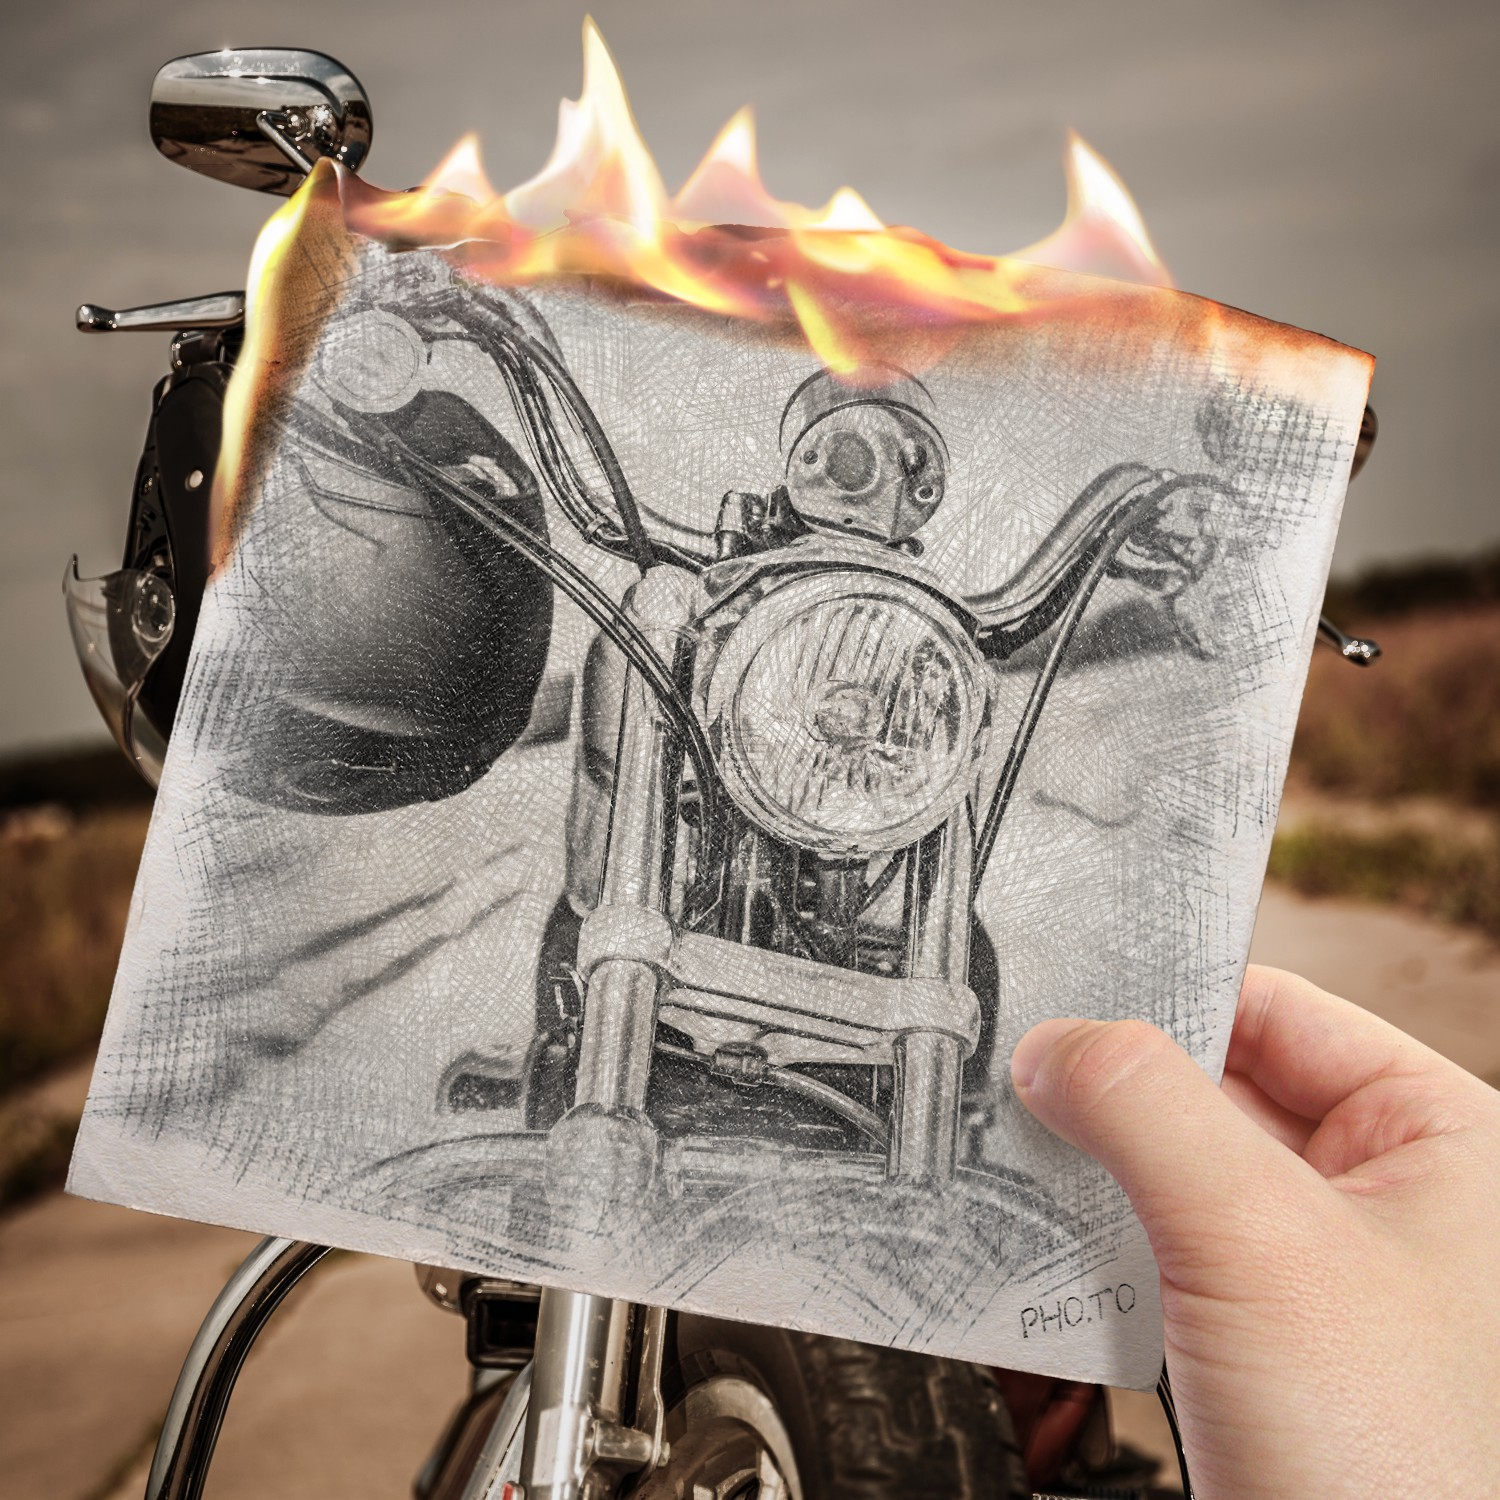 Burning sketch effect applied to a cool motorbike photo